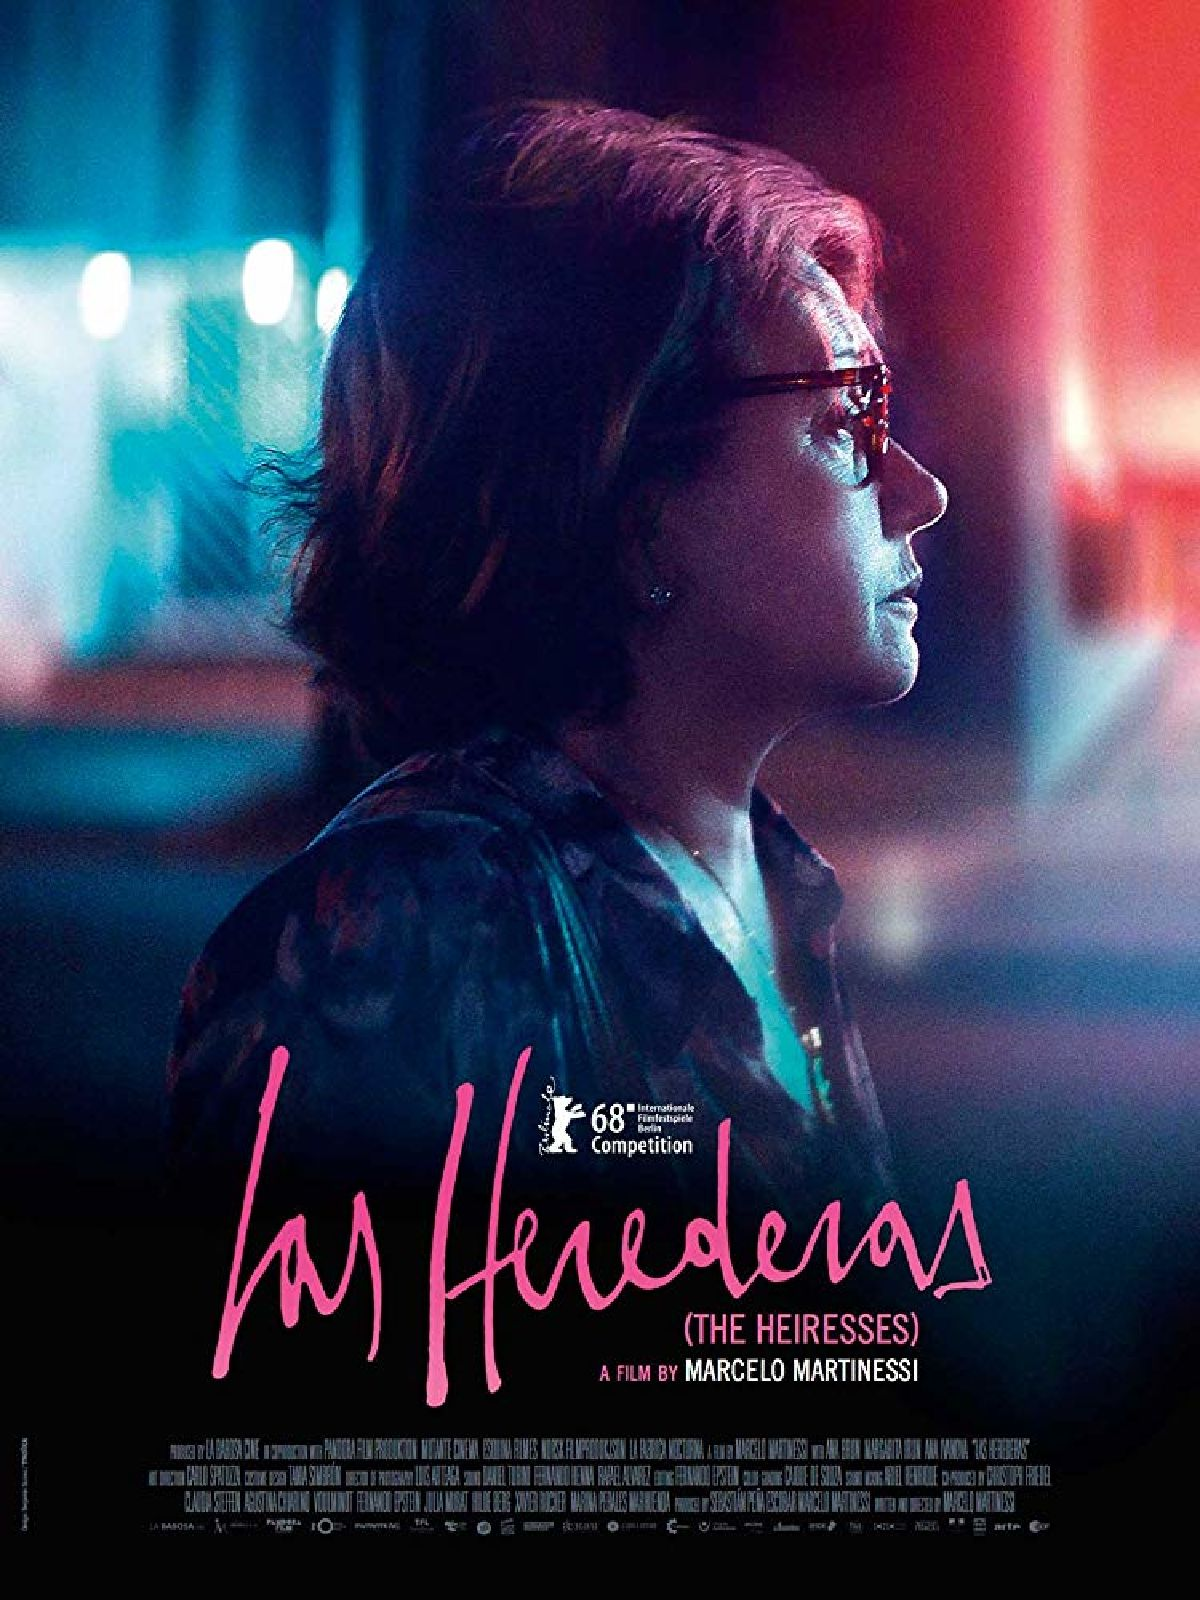 'The Heiresses' movie poster